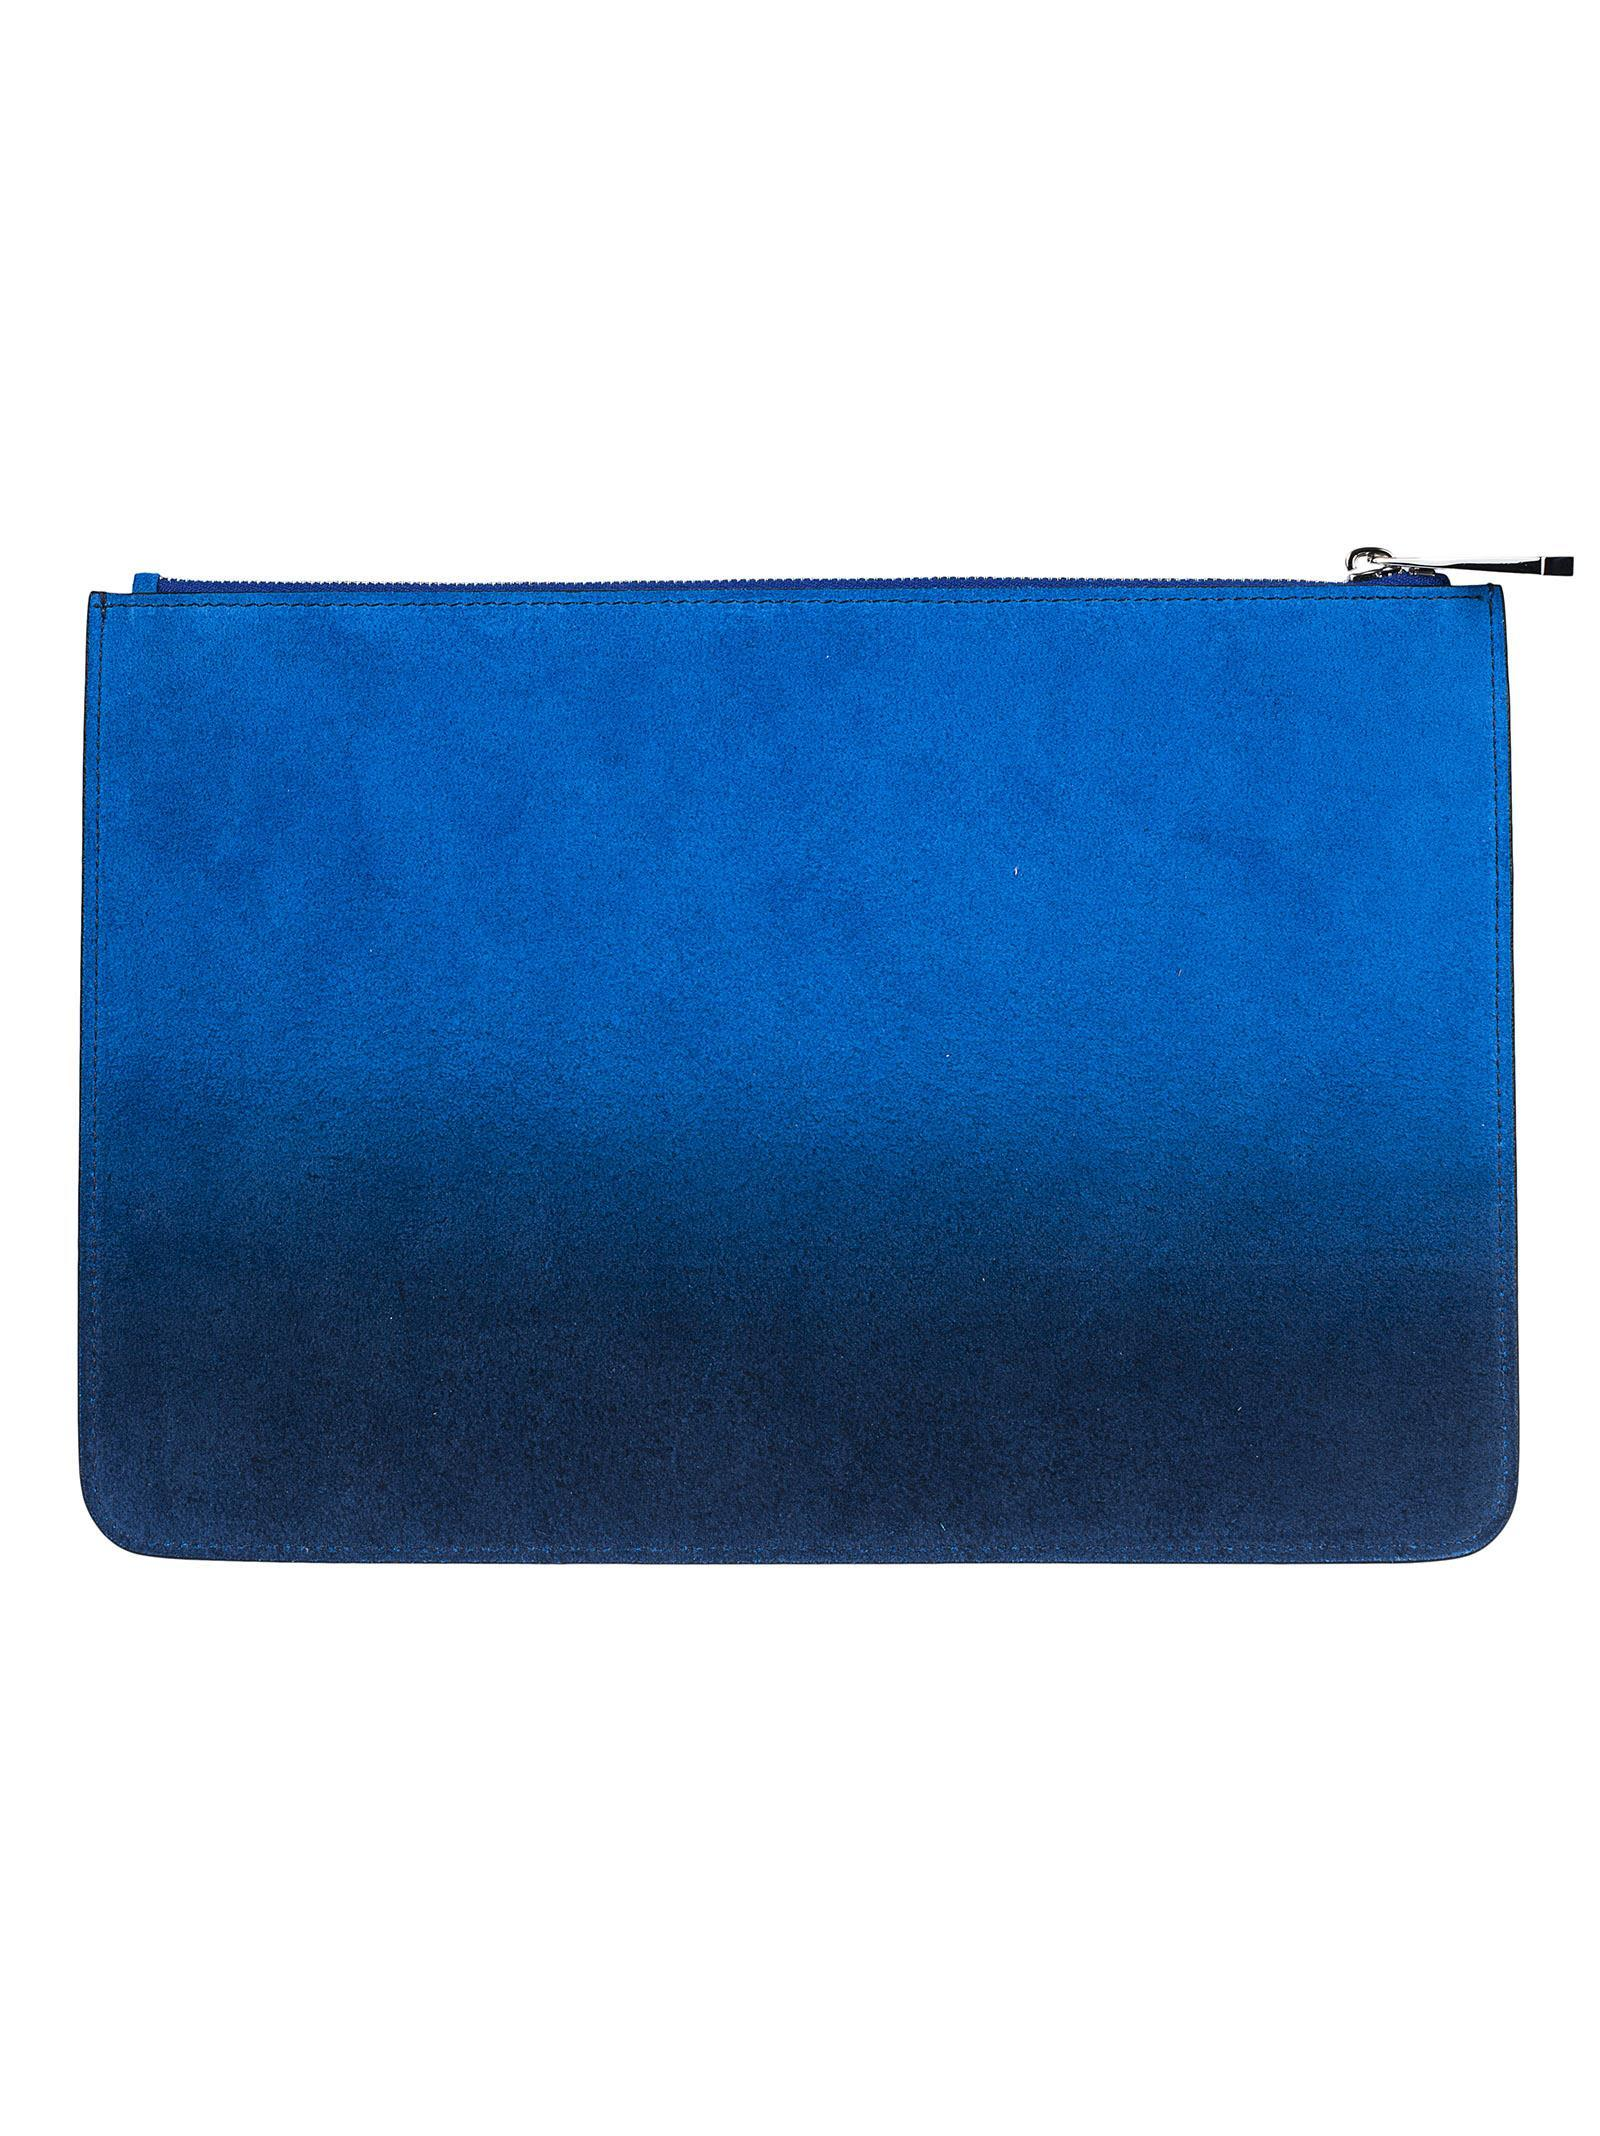 Givenchy Degrade Logo Pouch In Blue-silver